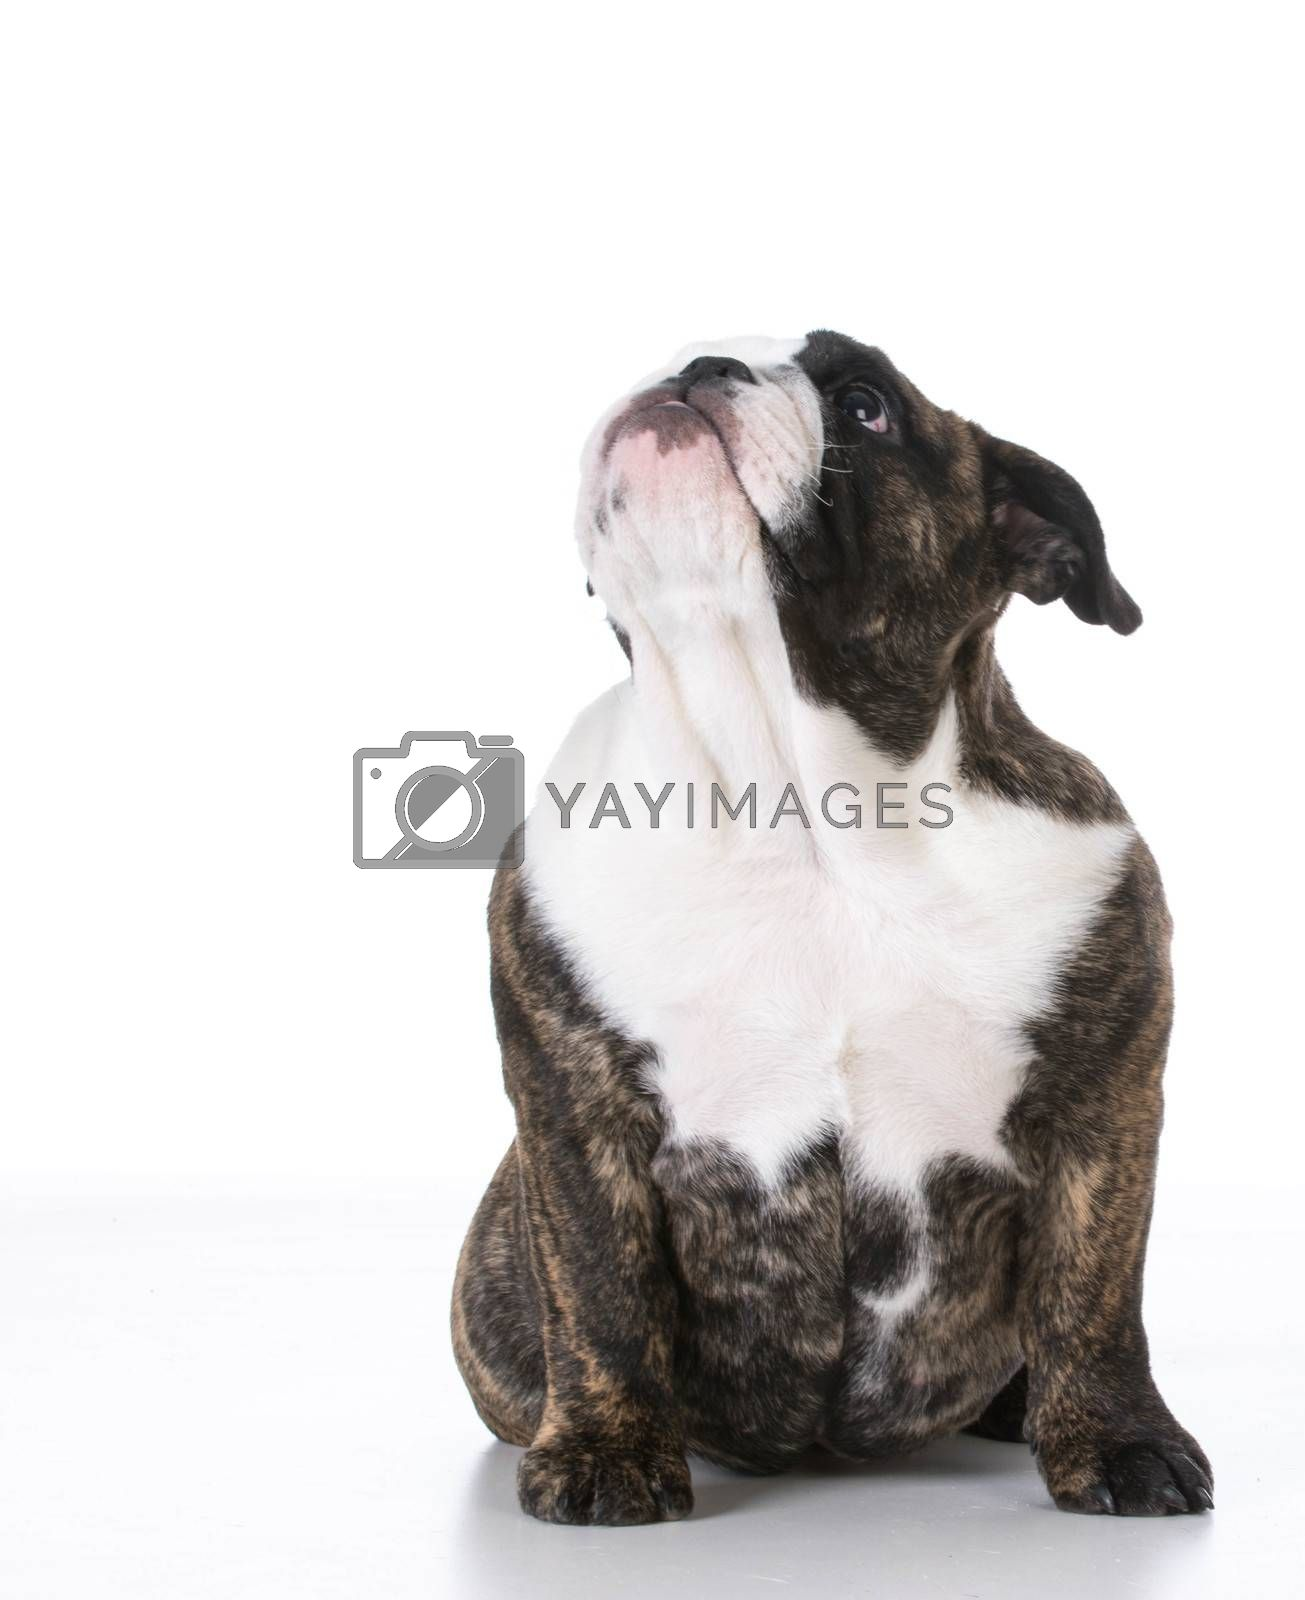 english bulldog puppy sitting looking up on white background